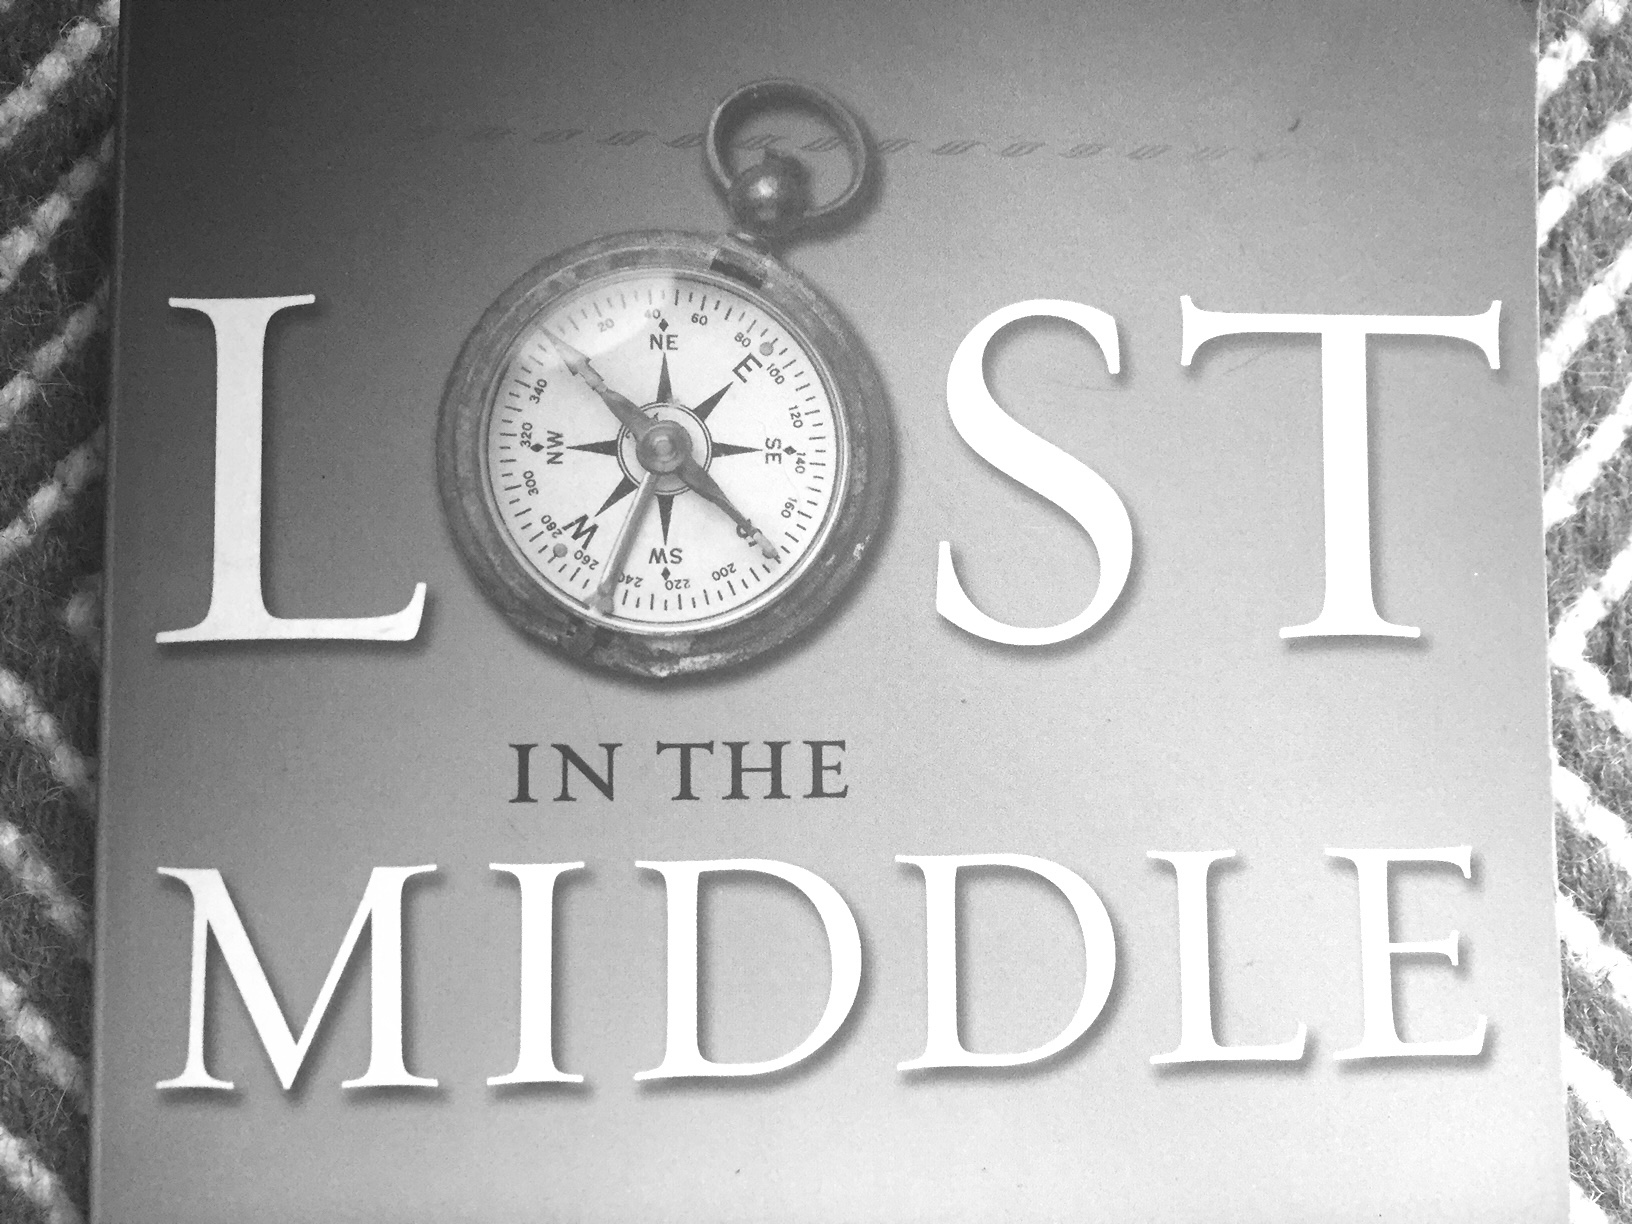 Lost in Middle